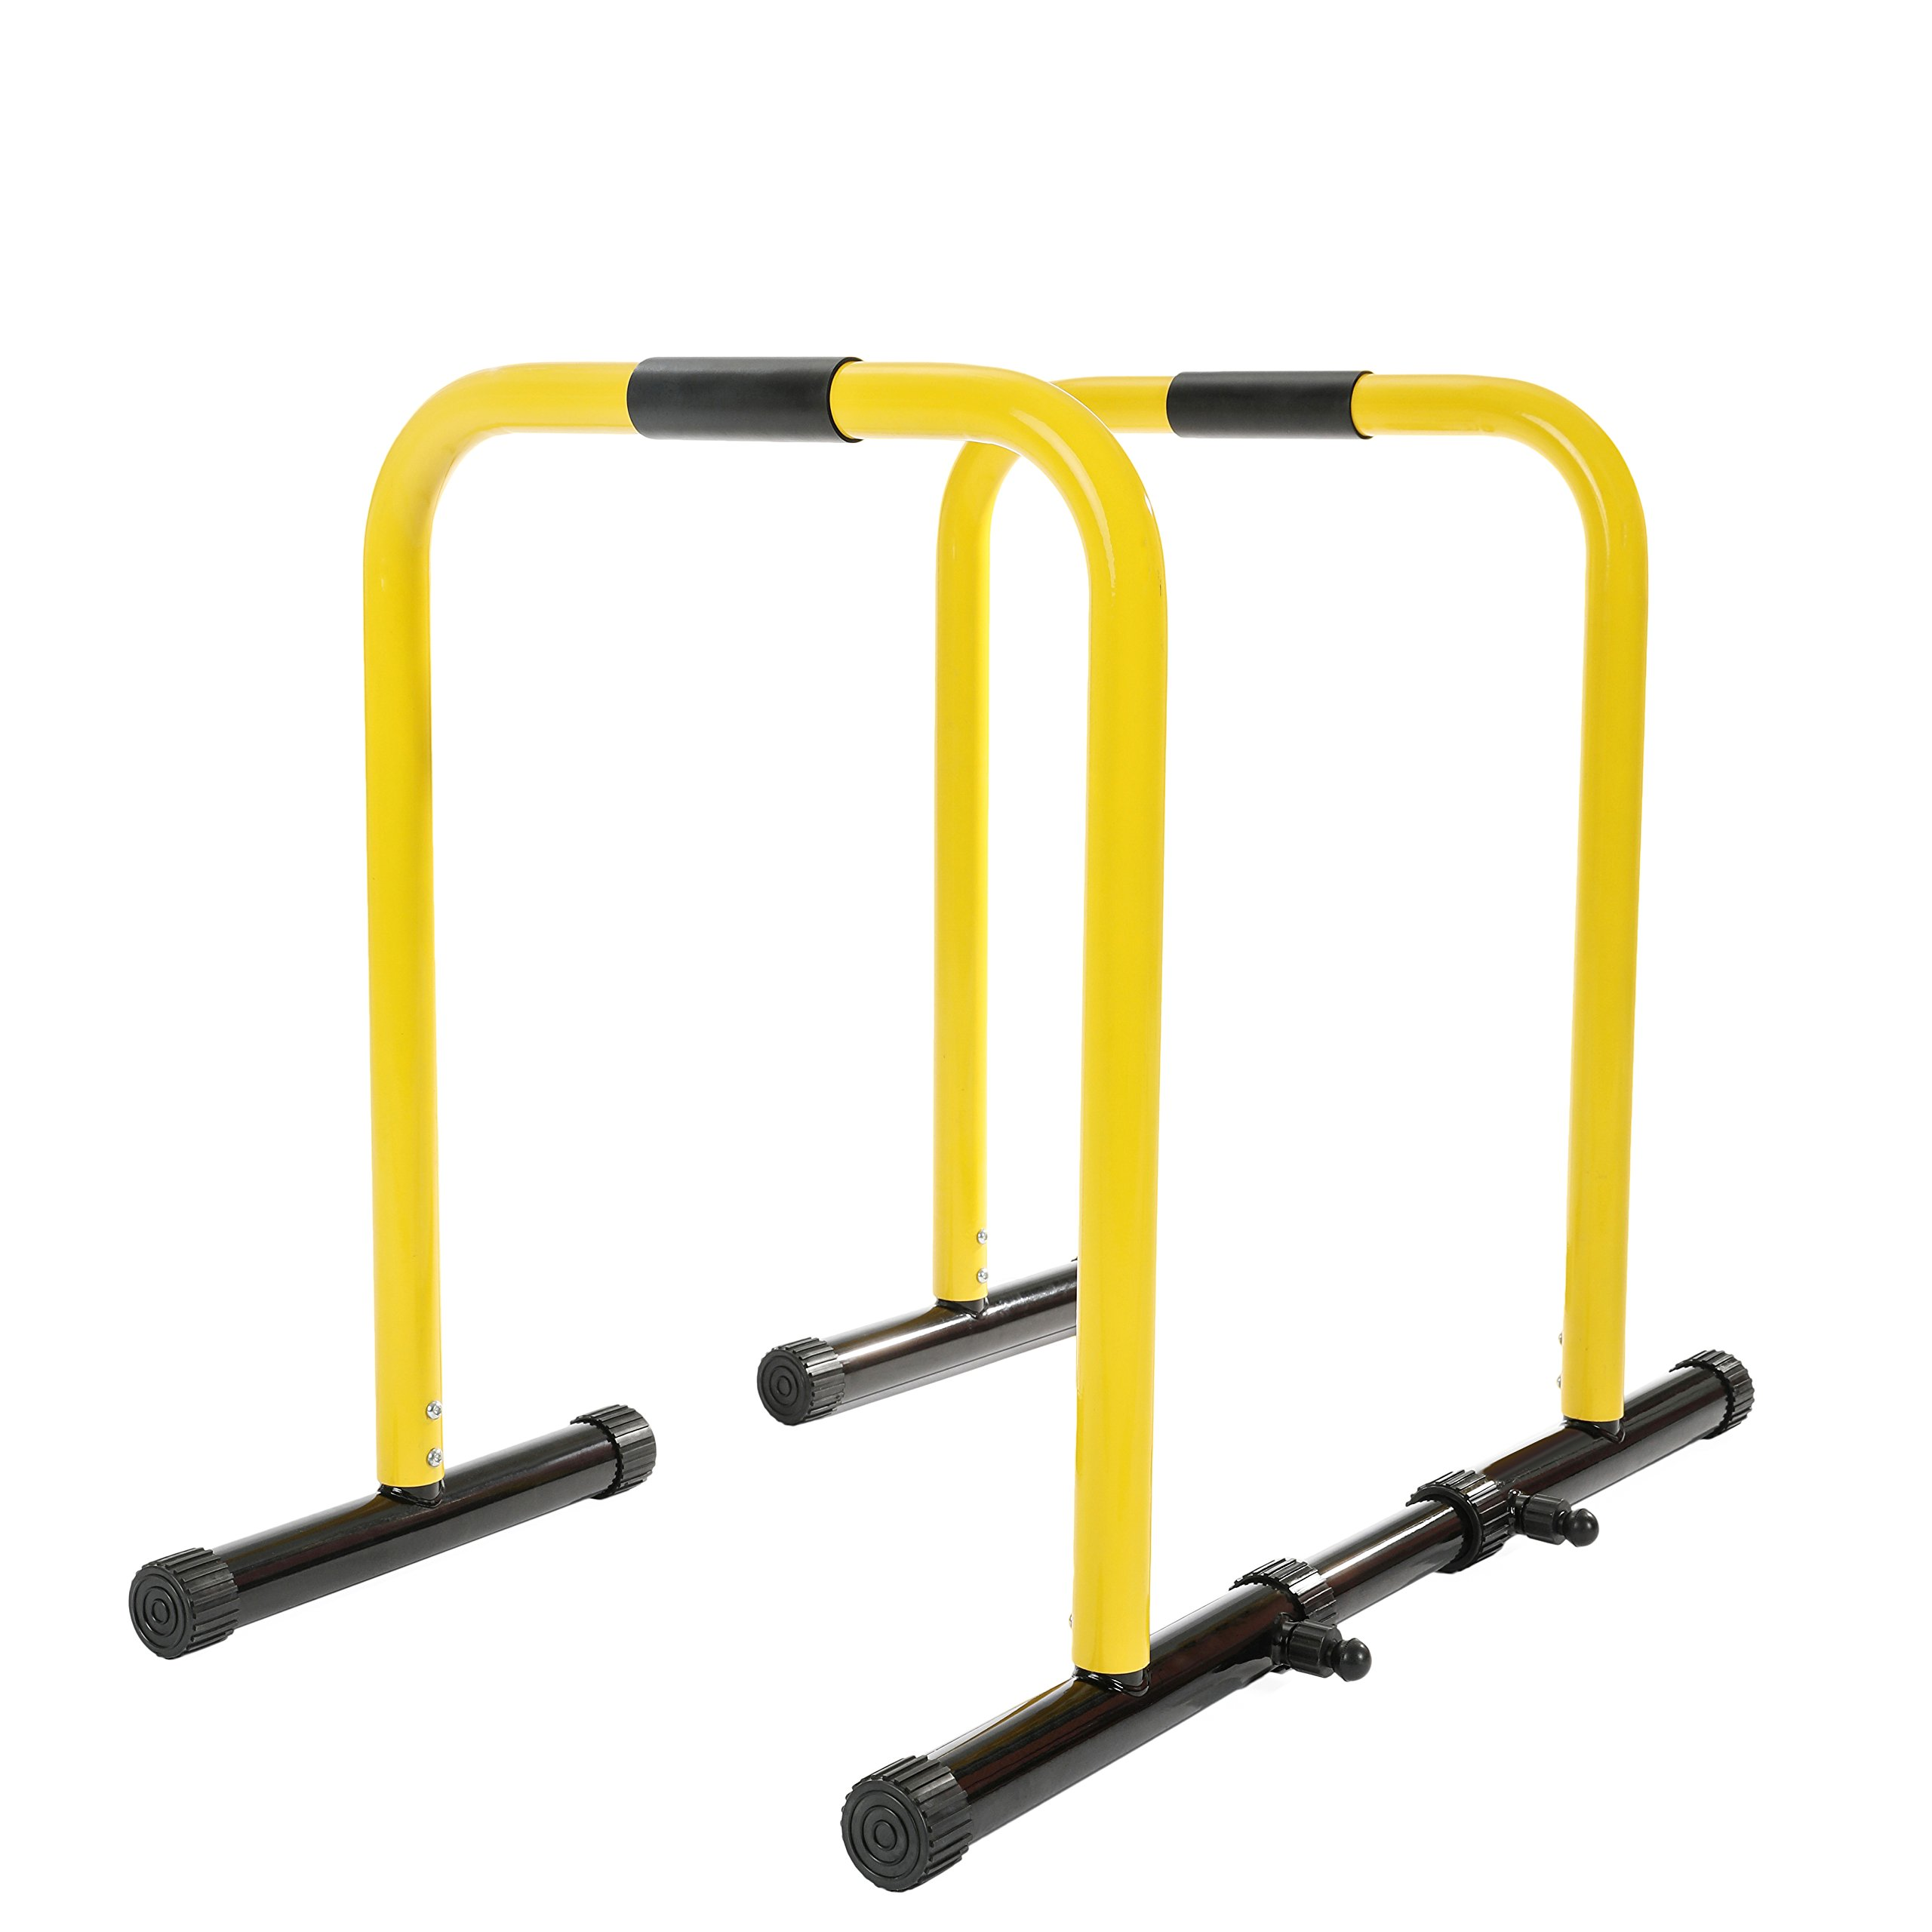 RELIFE REBUILD YOUR LIFE Dip Station Functional Heavy Duty Dip Stands Fitness Workout Dip bar Station Stabilizer Parallette Push Up Stand by RELIFE REBUILD YOUR LIFE (Image #2)